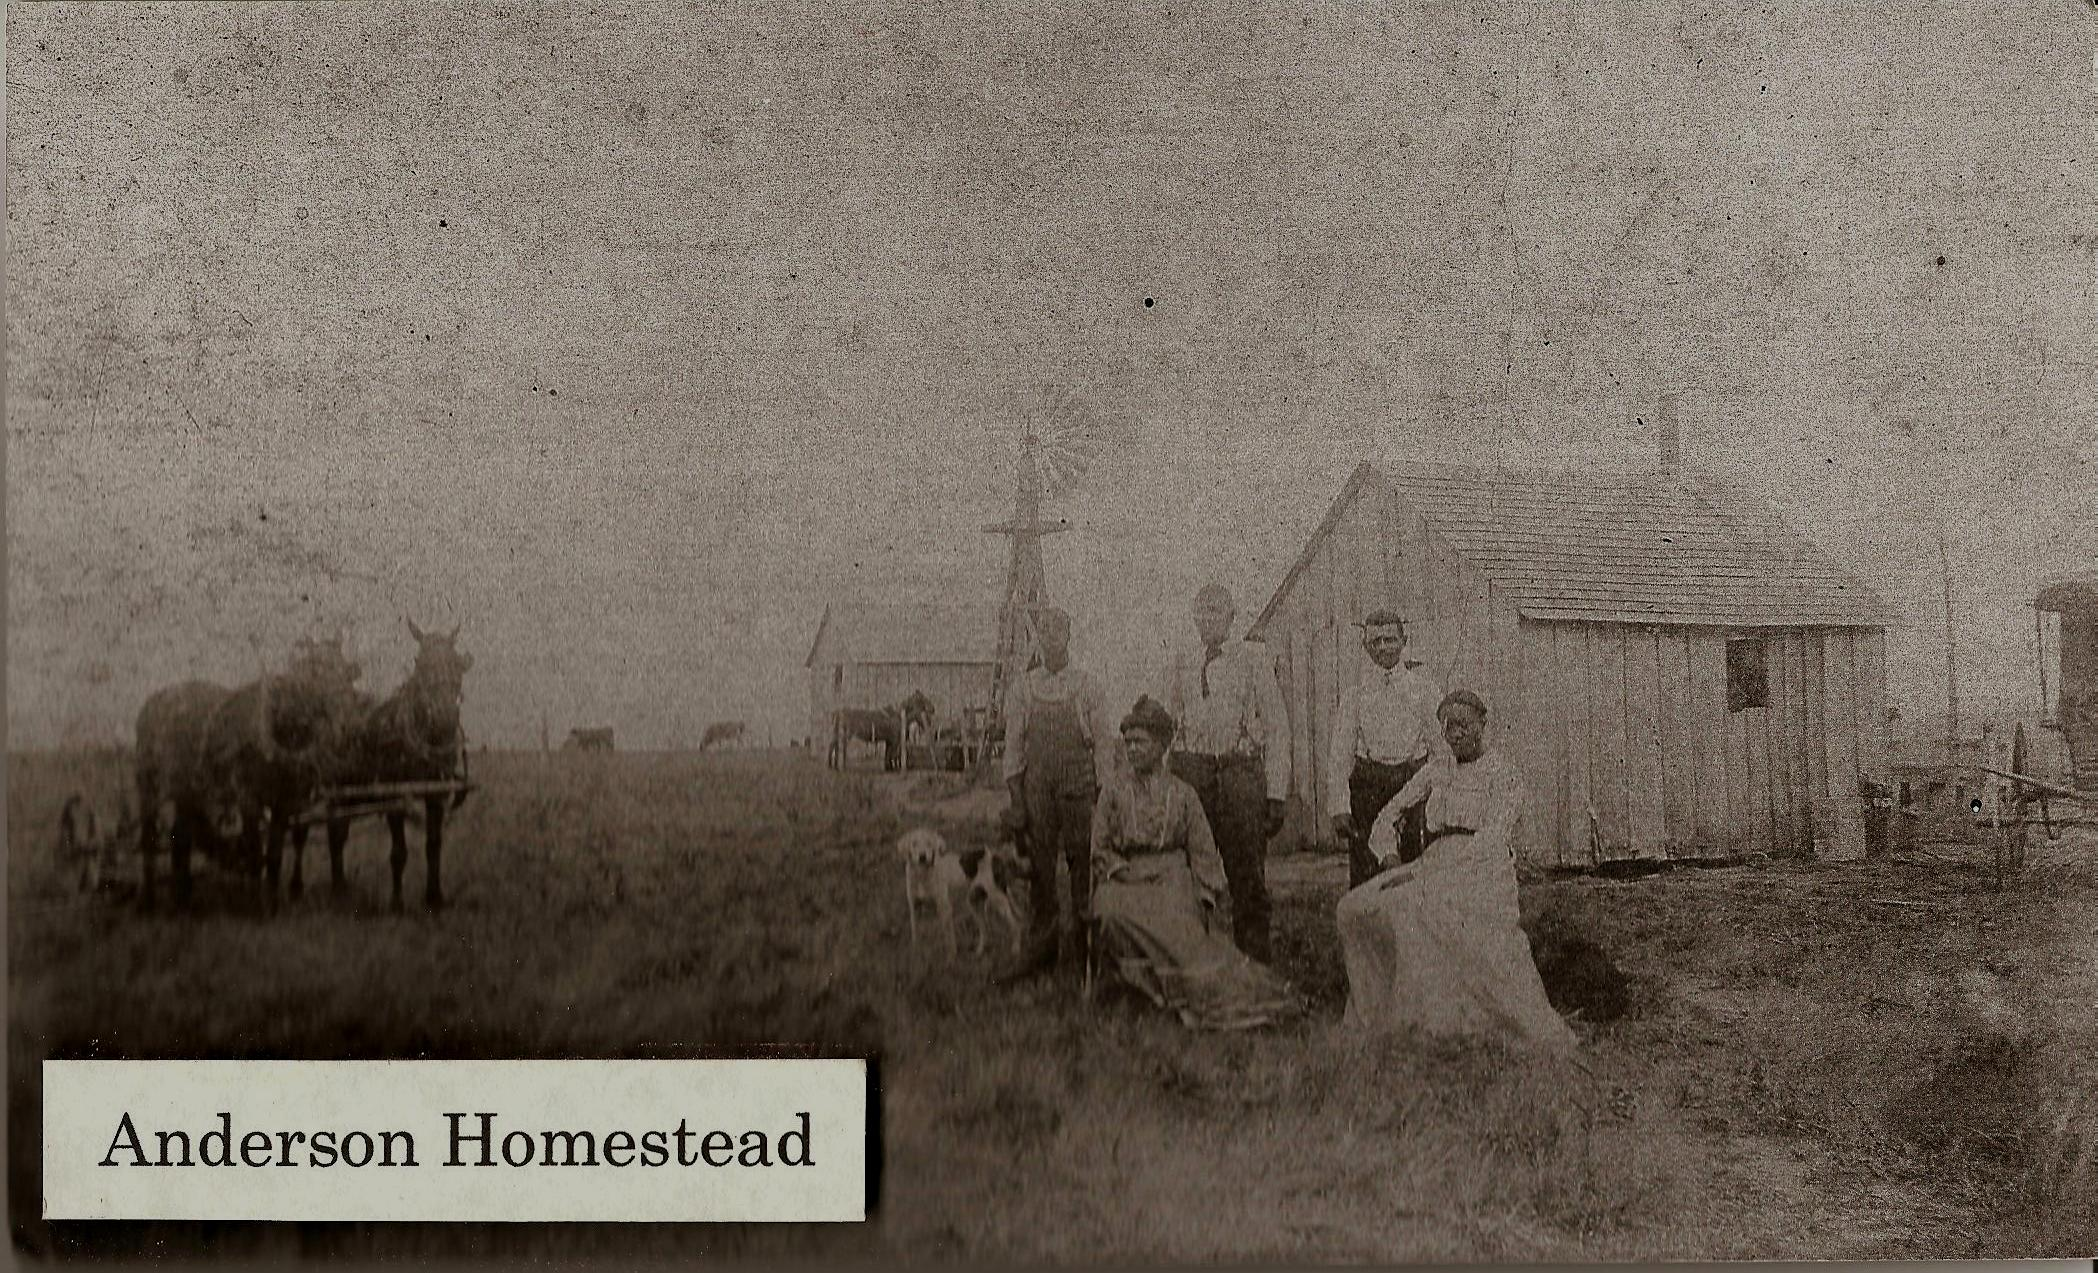 Short stories about harvey co ks and its cities for Kansas homestead act